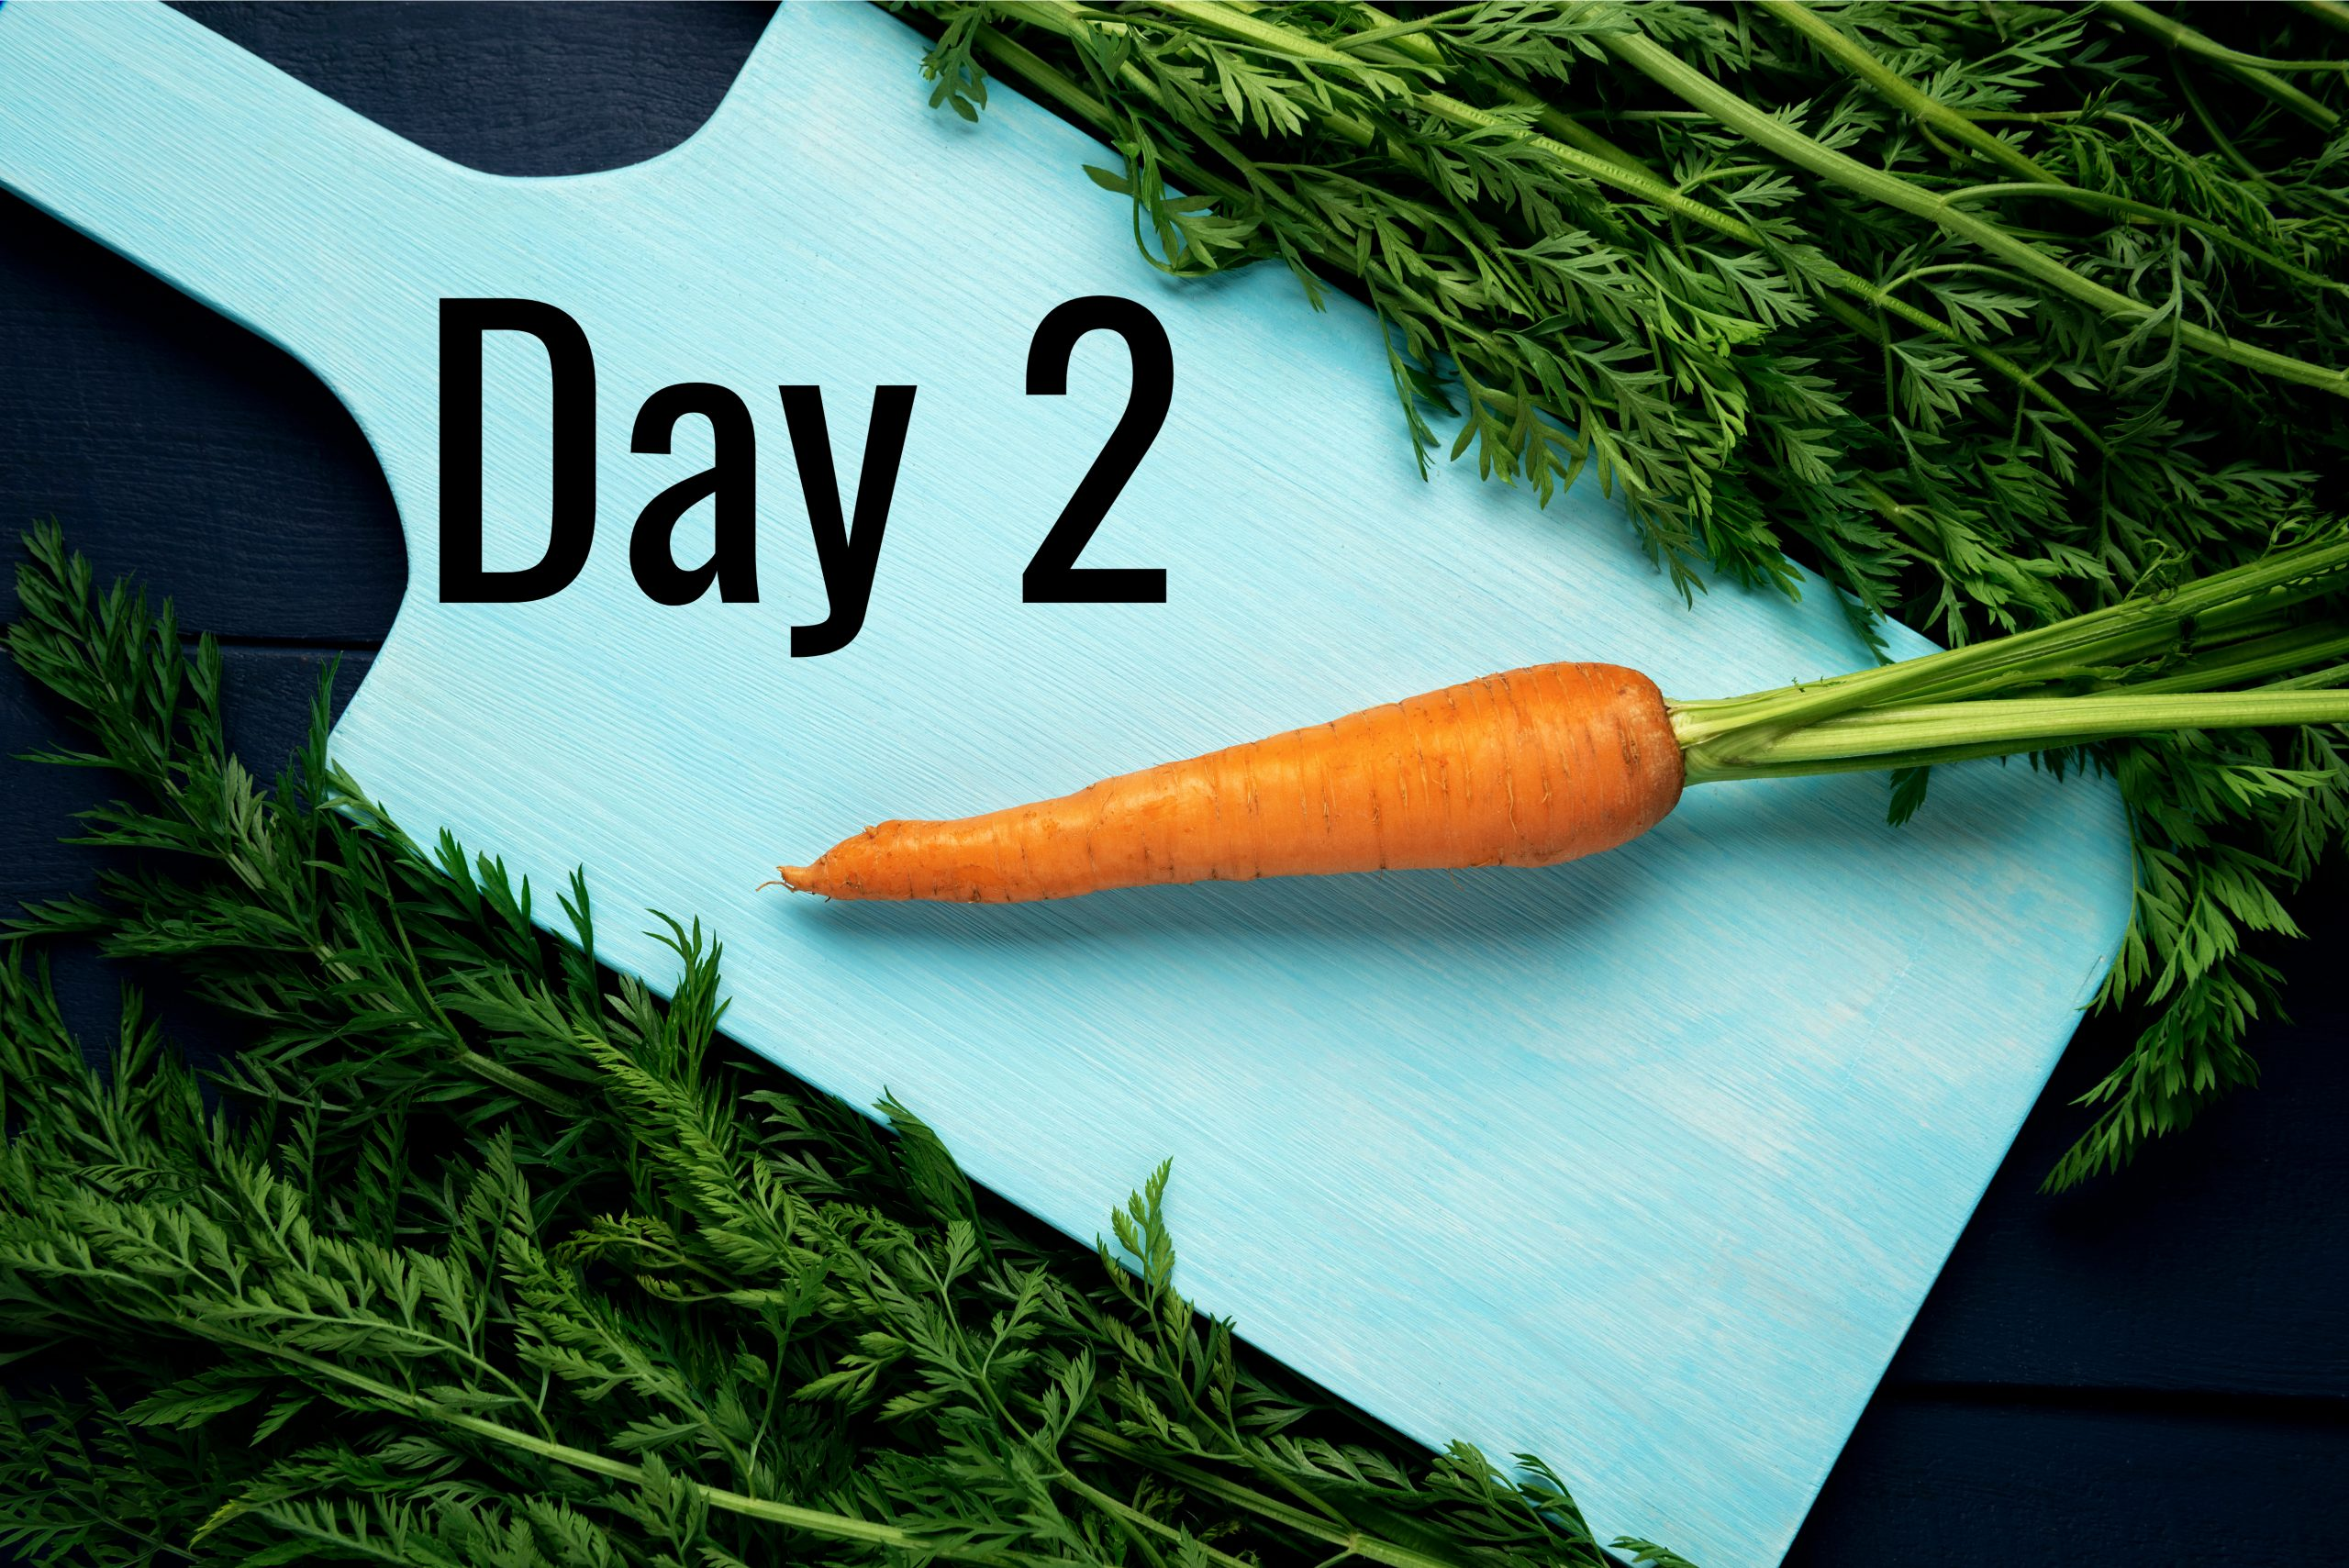 Day 2 – One more vegetable